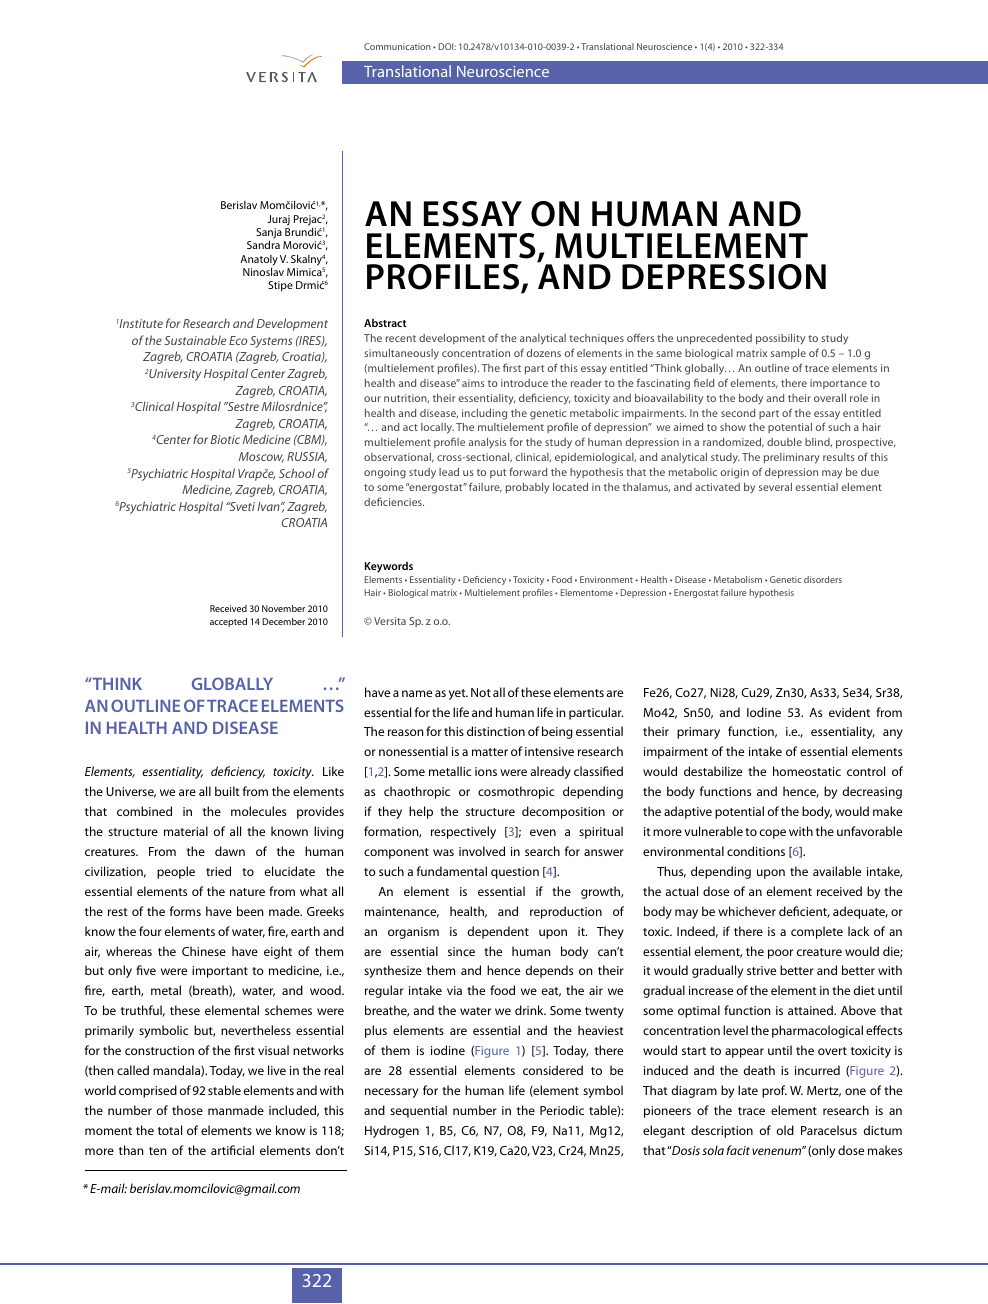 An essay on human and elements, multielement profiles, and